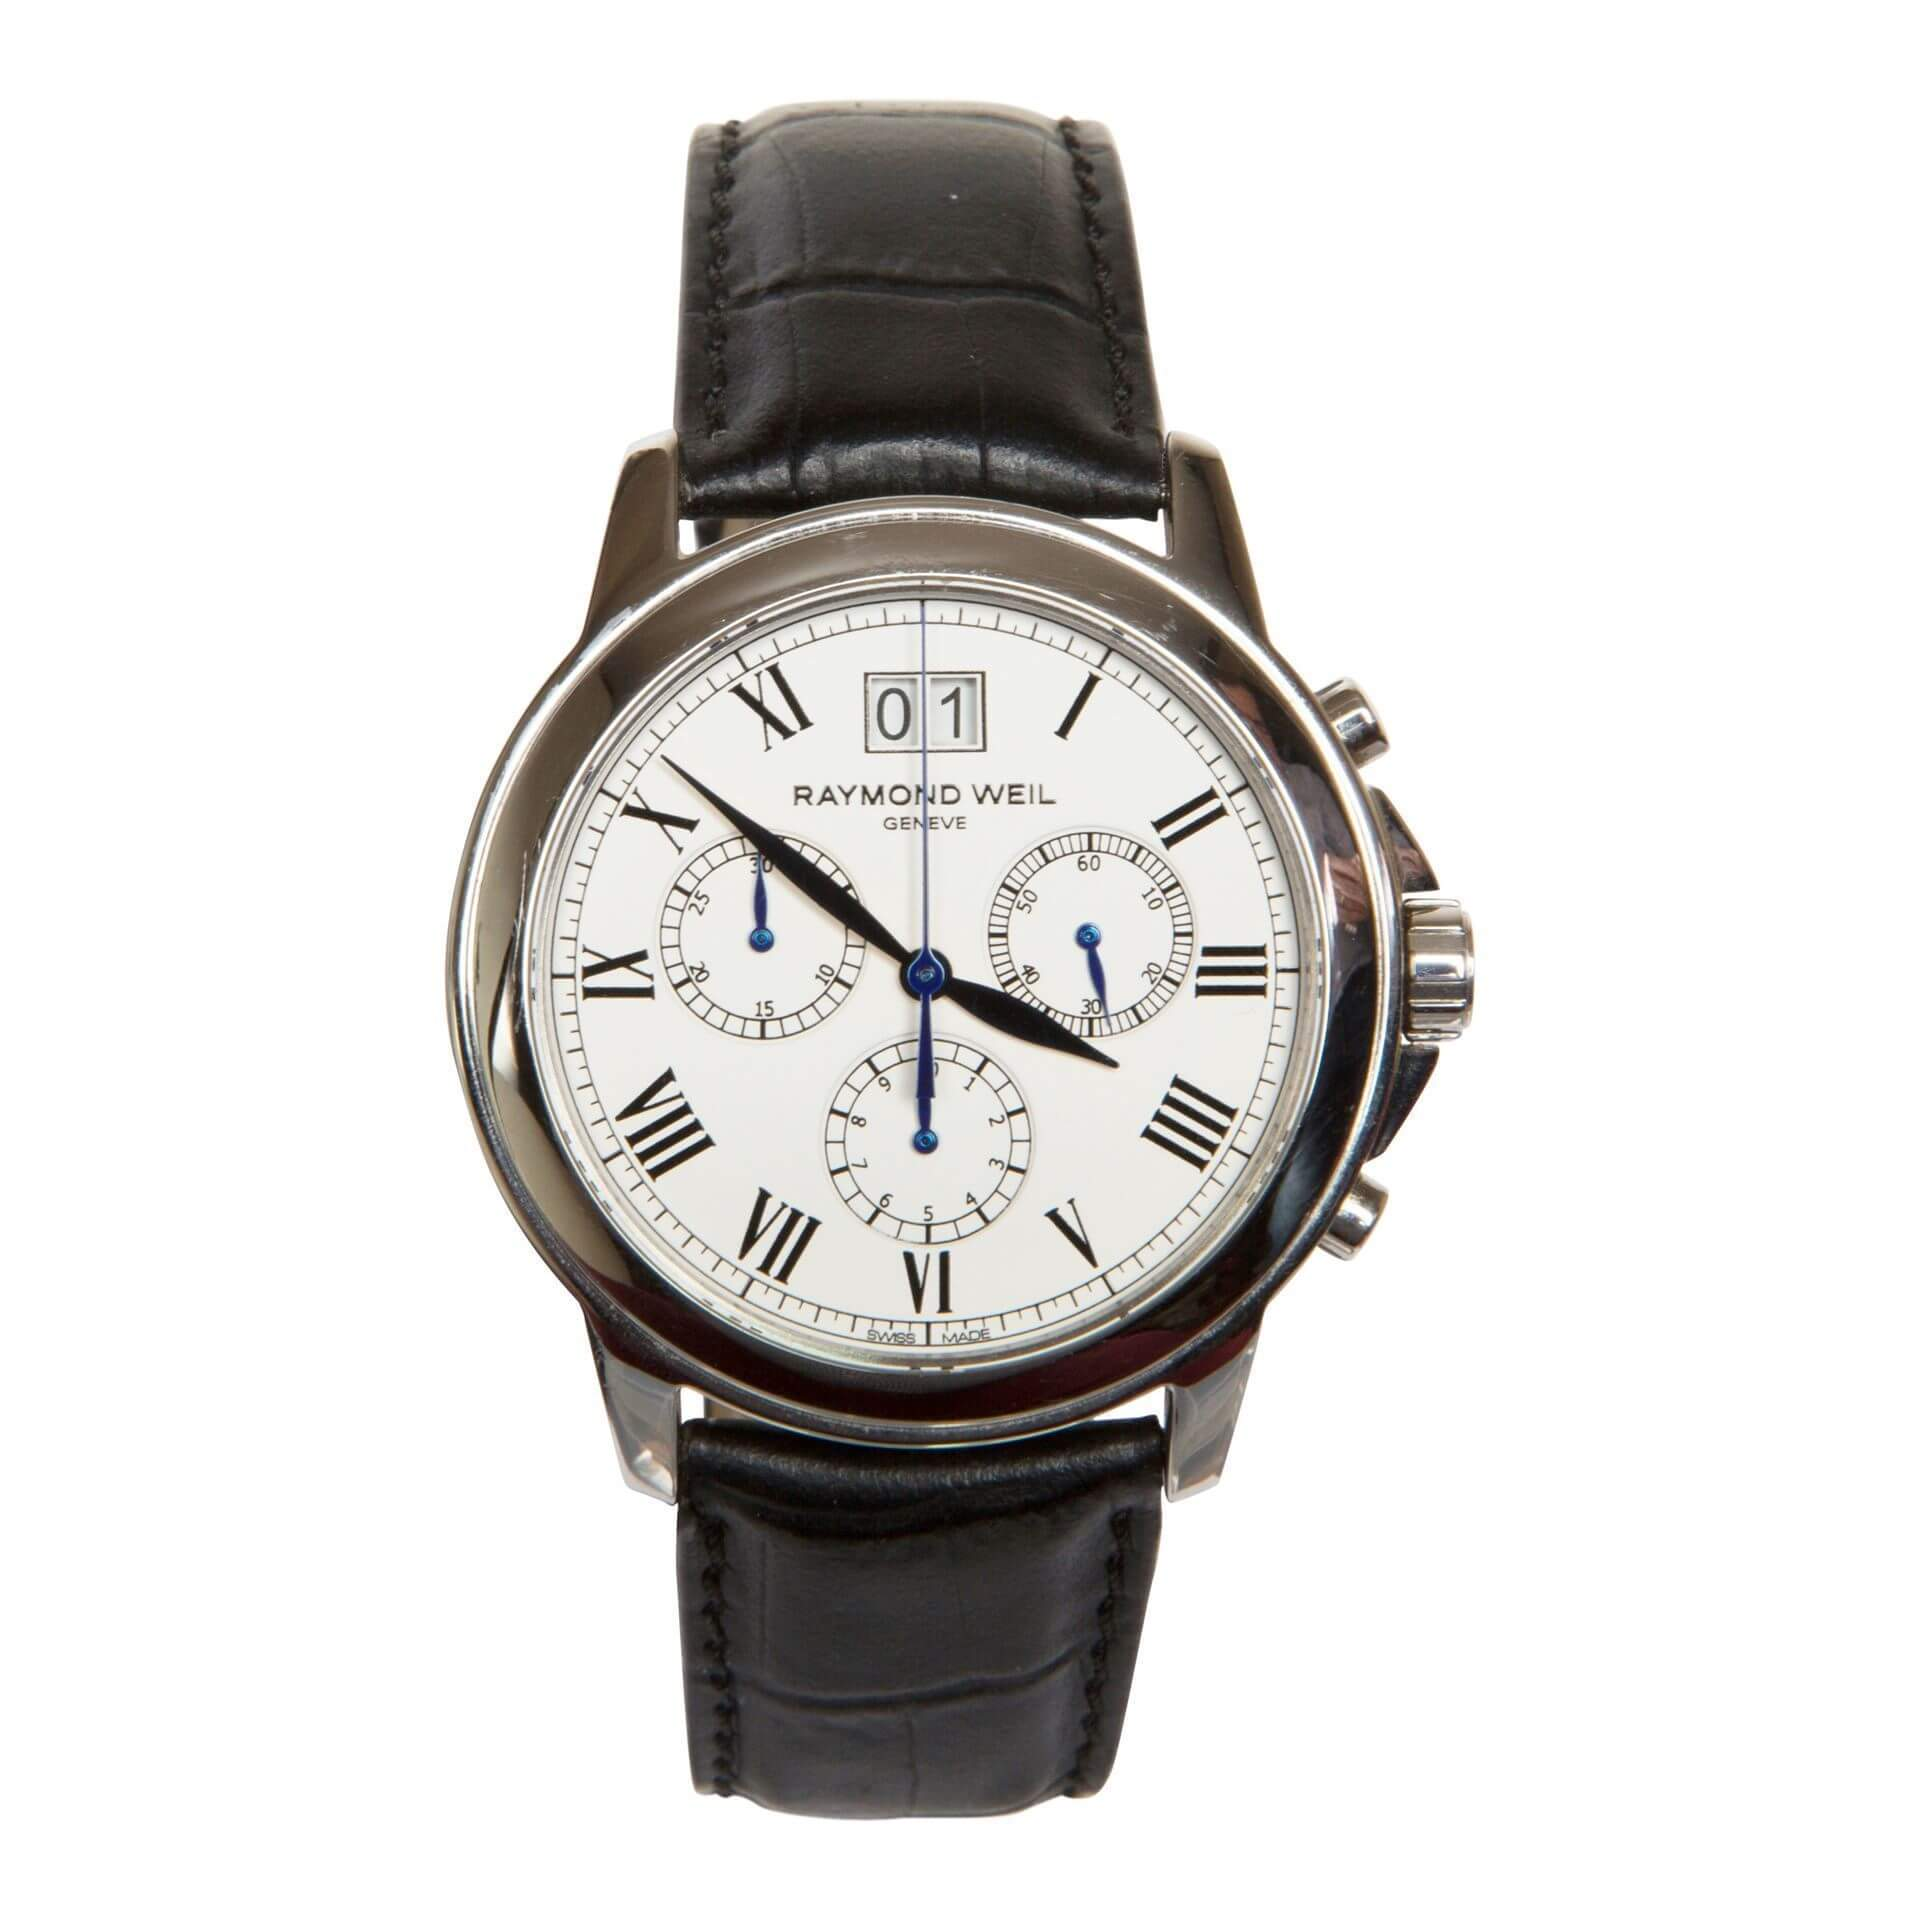 raymond weil tradition 4476 stainless steel chronograph mens raymond weil tradition 4476 stainless steel chronograph mens vintage watch